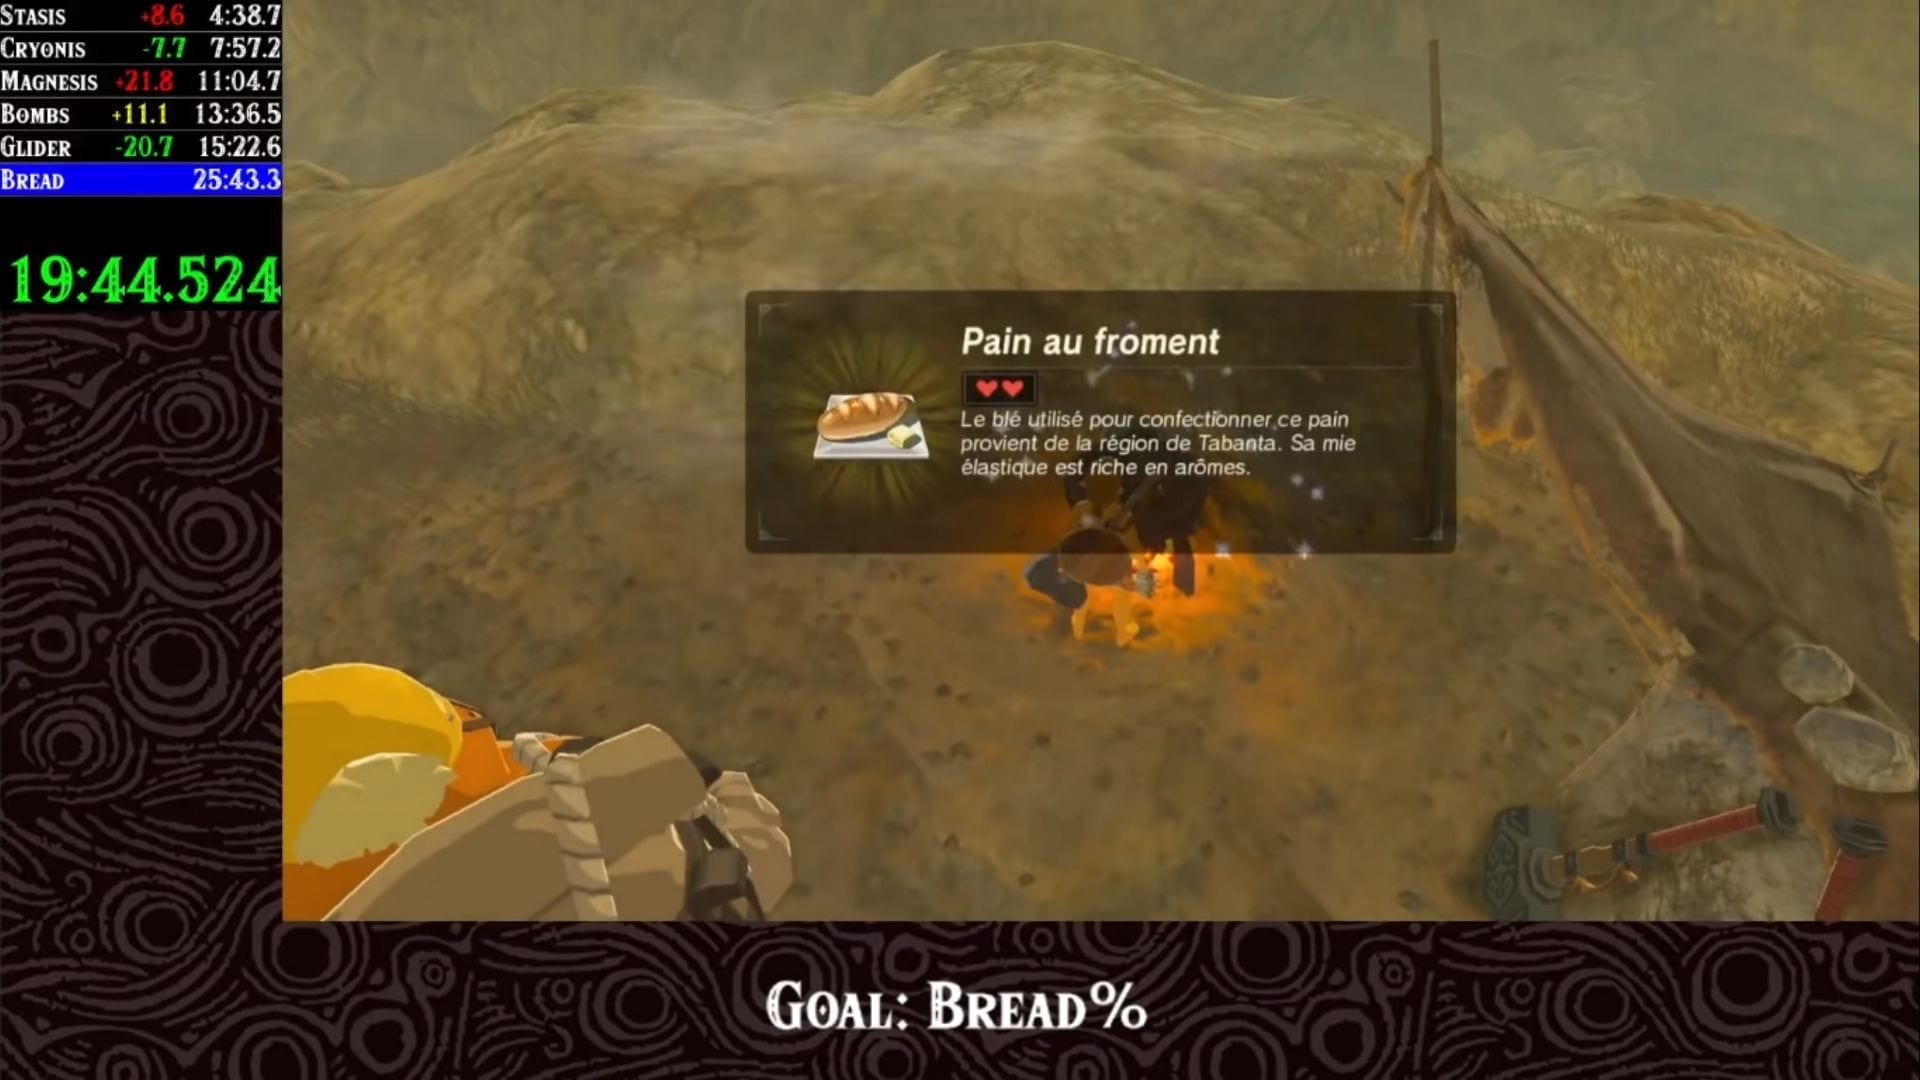 Breath of the wild bread percent